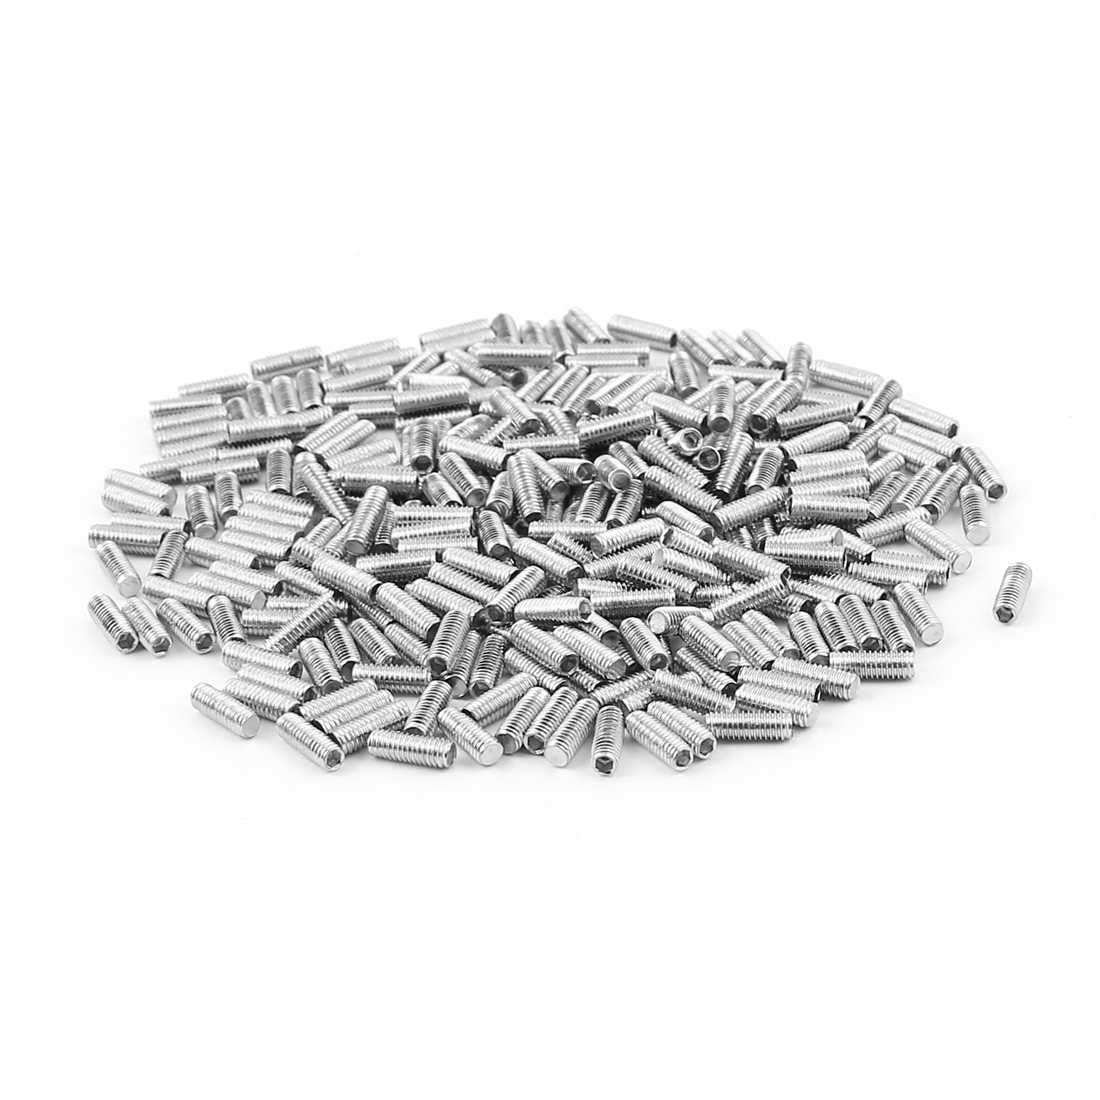 300pcs Stainless Steel M3x8mm Hexagonal Drive Flat Point Set Grub Screws